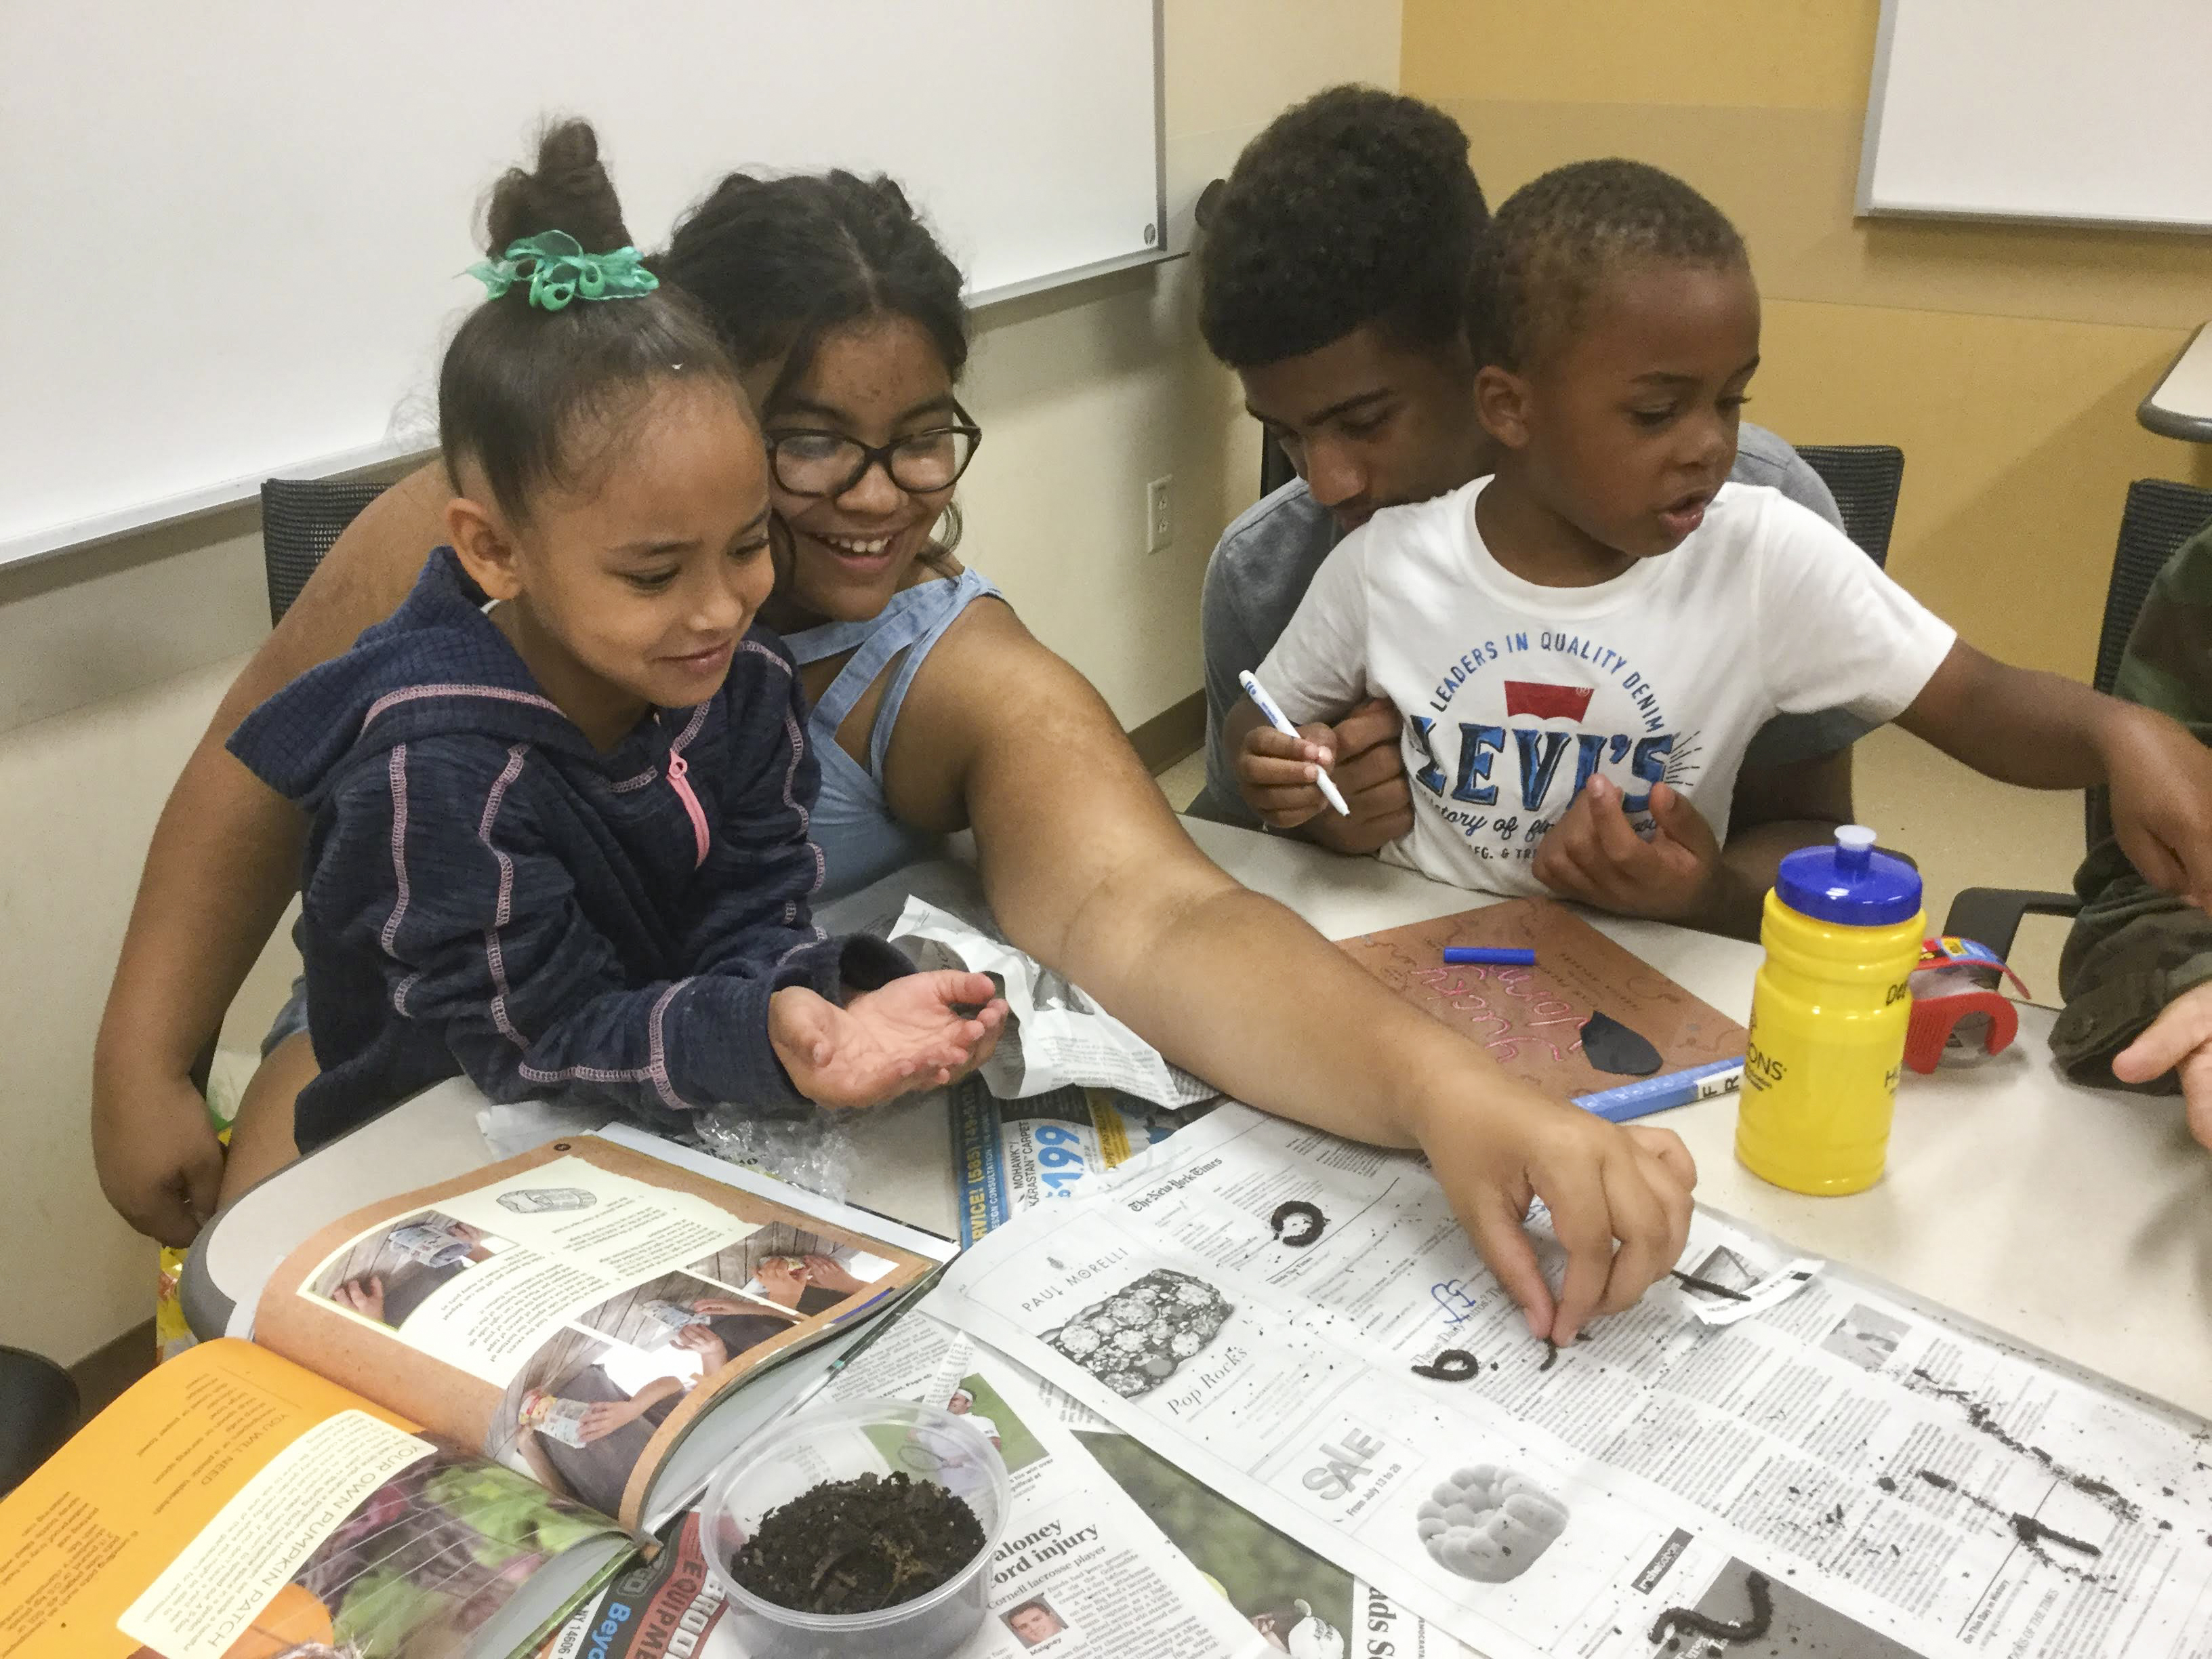 Older students helping younger students learn about worms and soil.